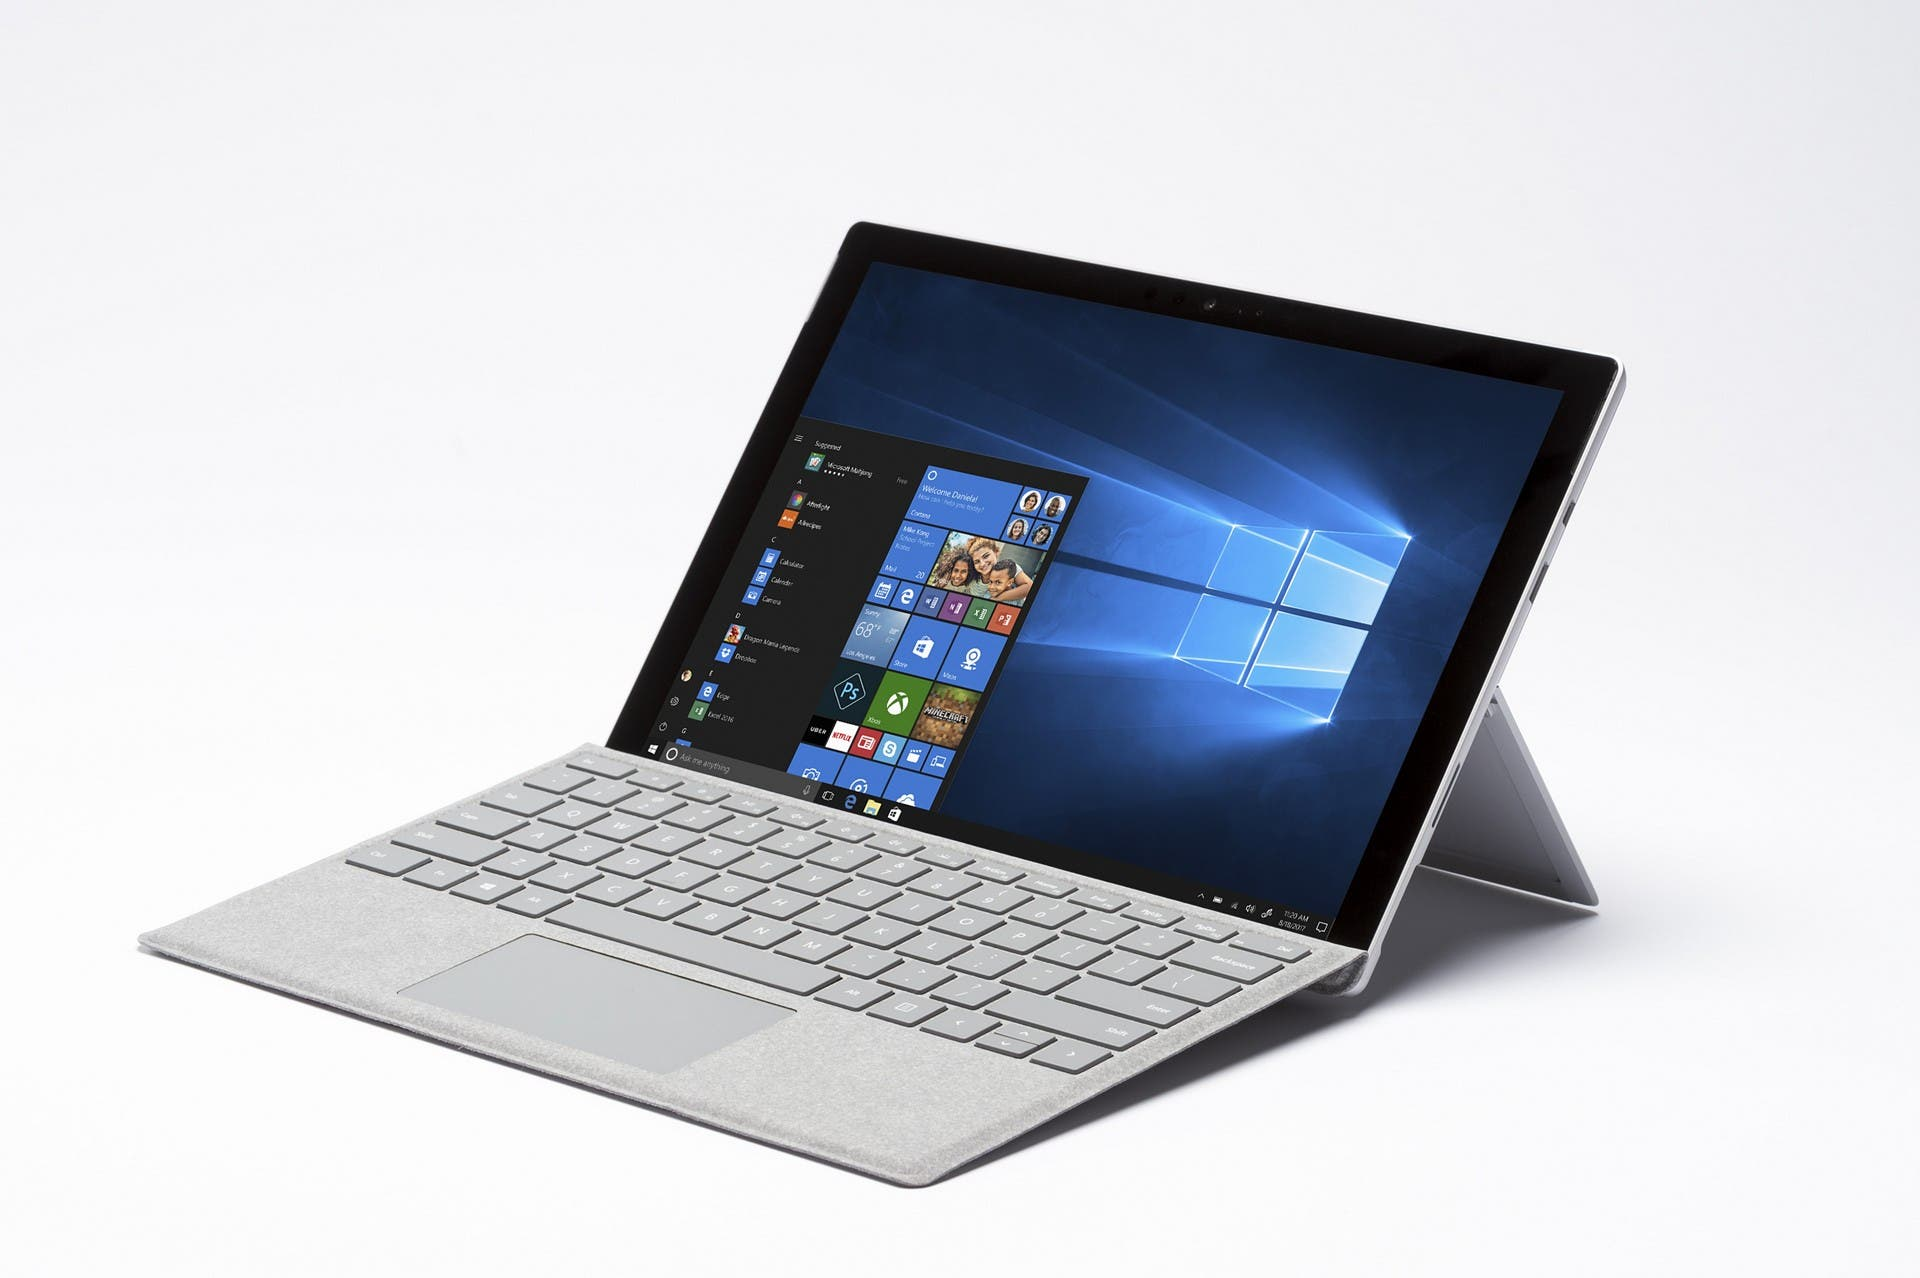 how to connect bluetooth speaker to surface pro